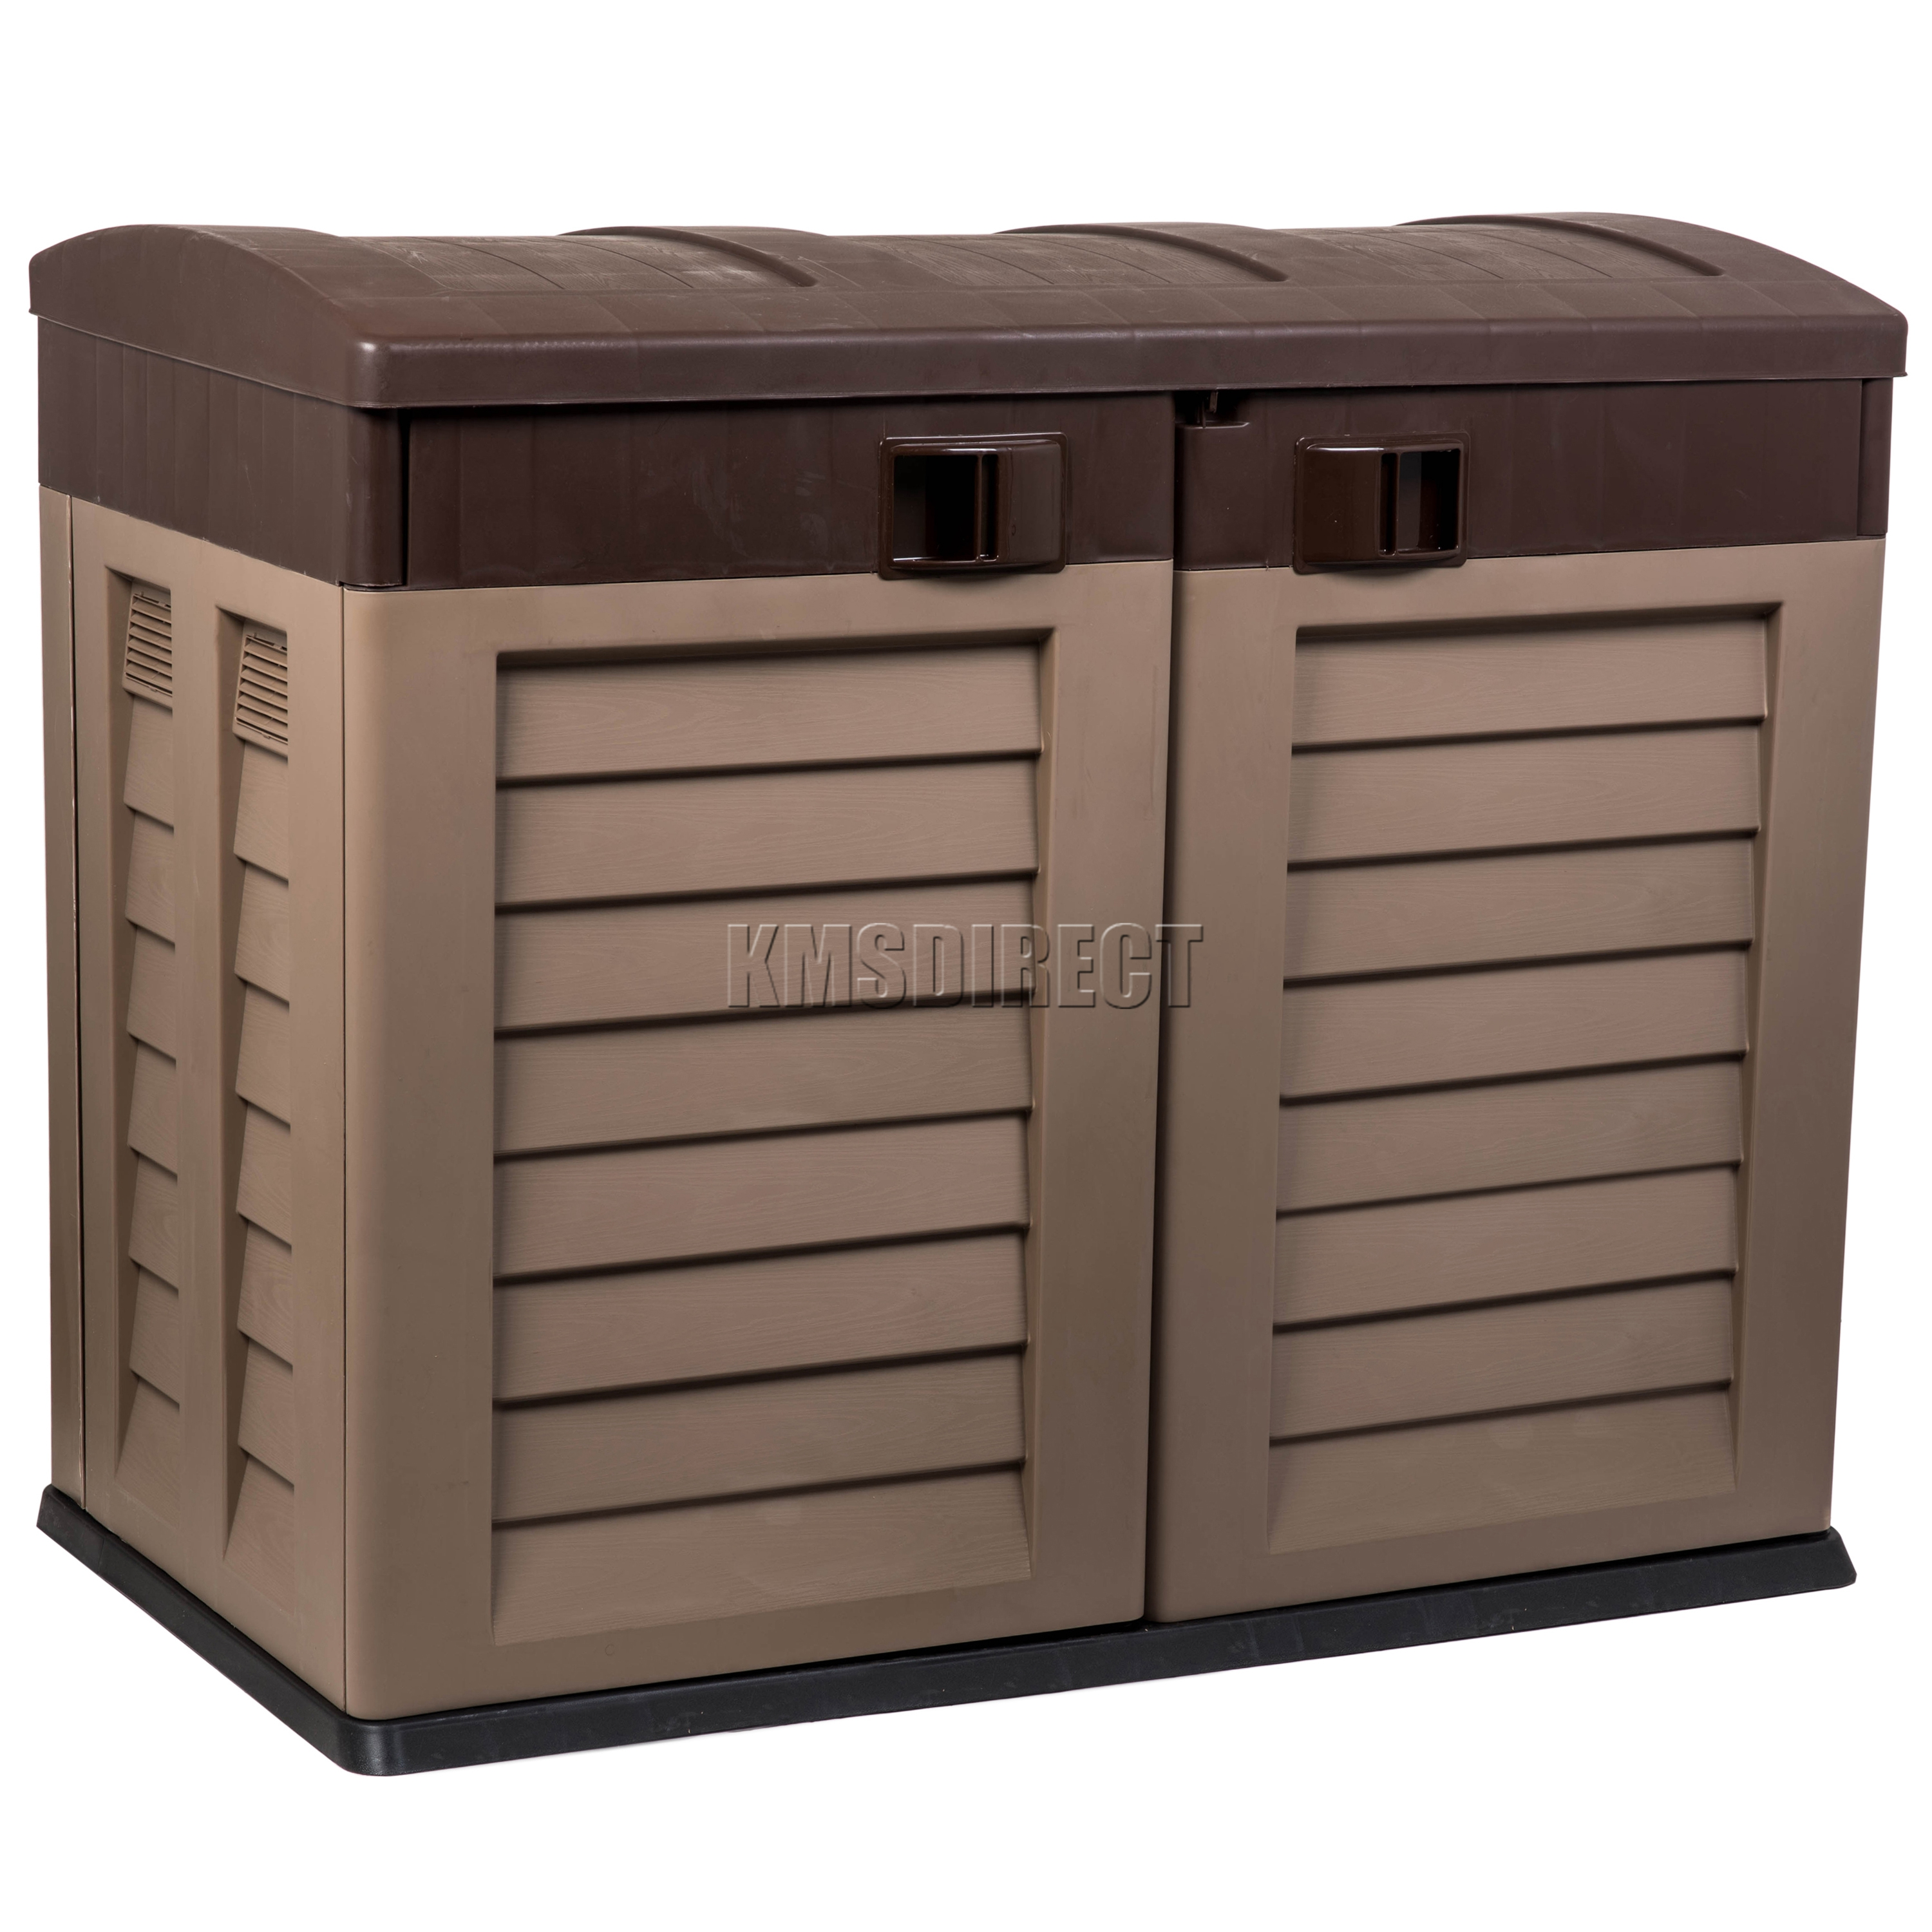 Starplast Outdoor Plastic Garden Low Shed Box Chest